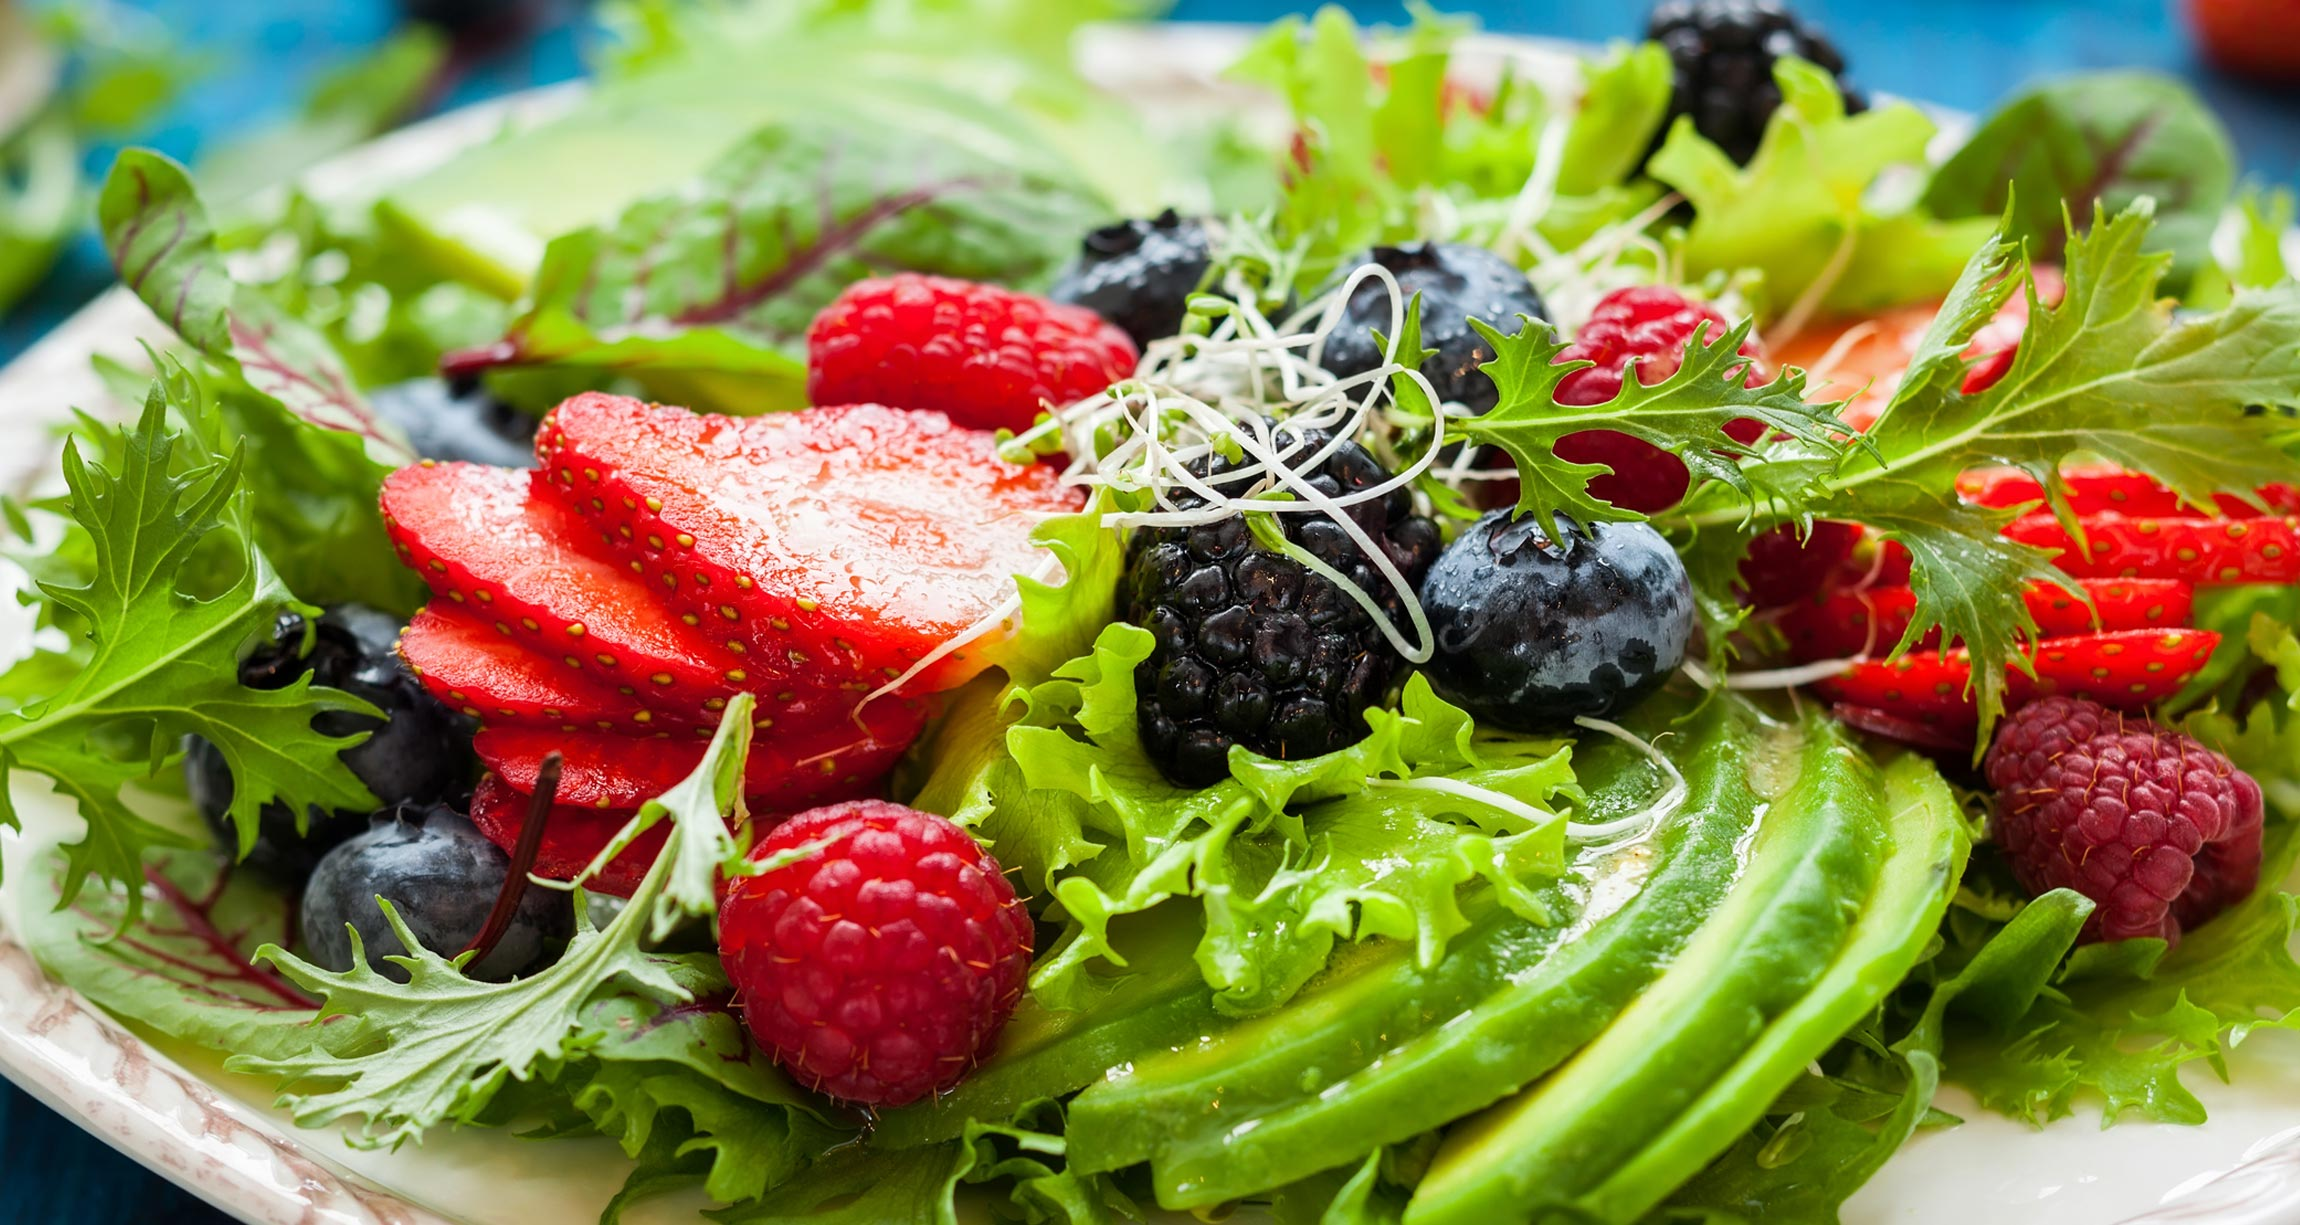 salad with strawberries, blueberries, and blackberries